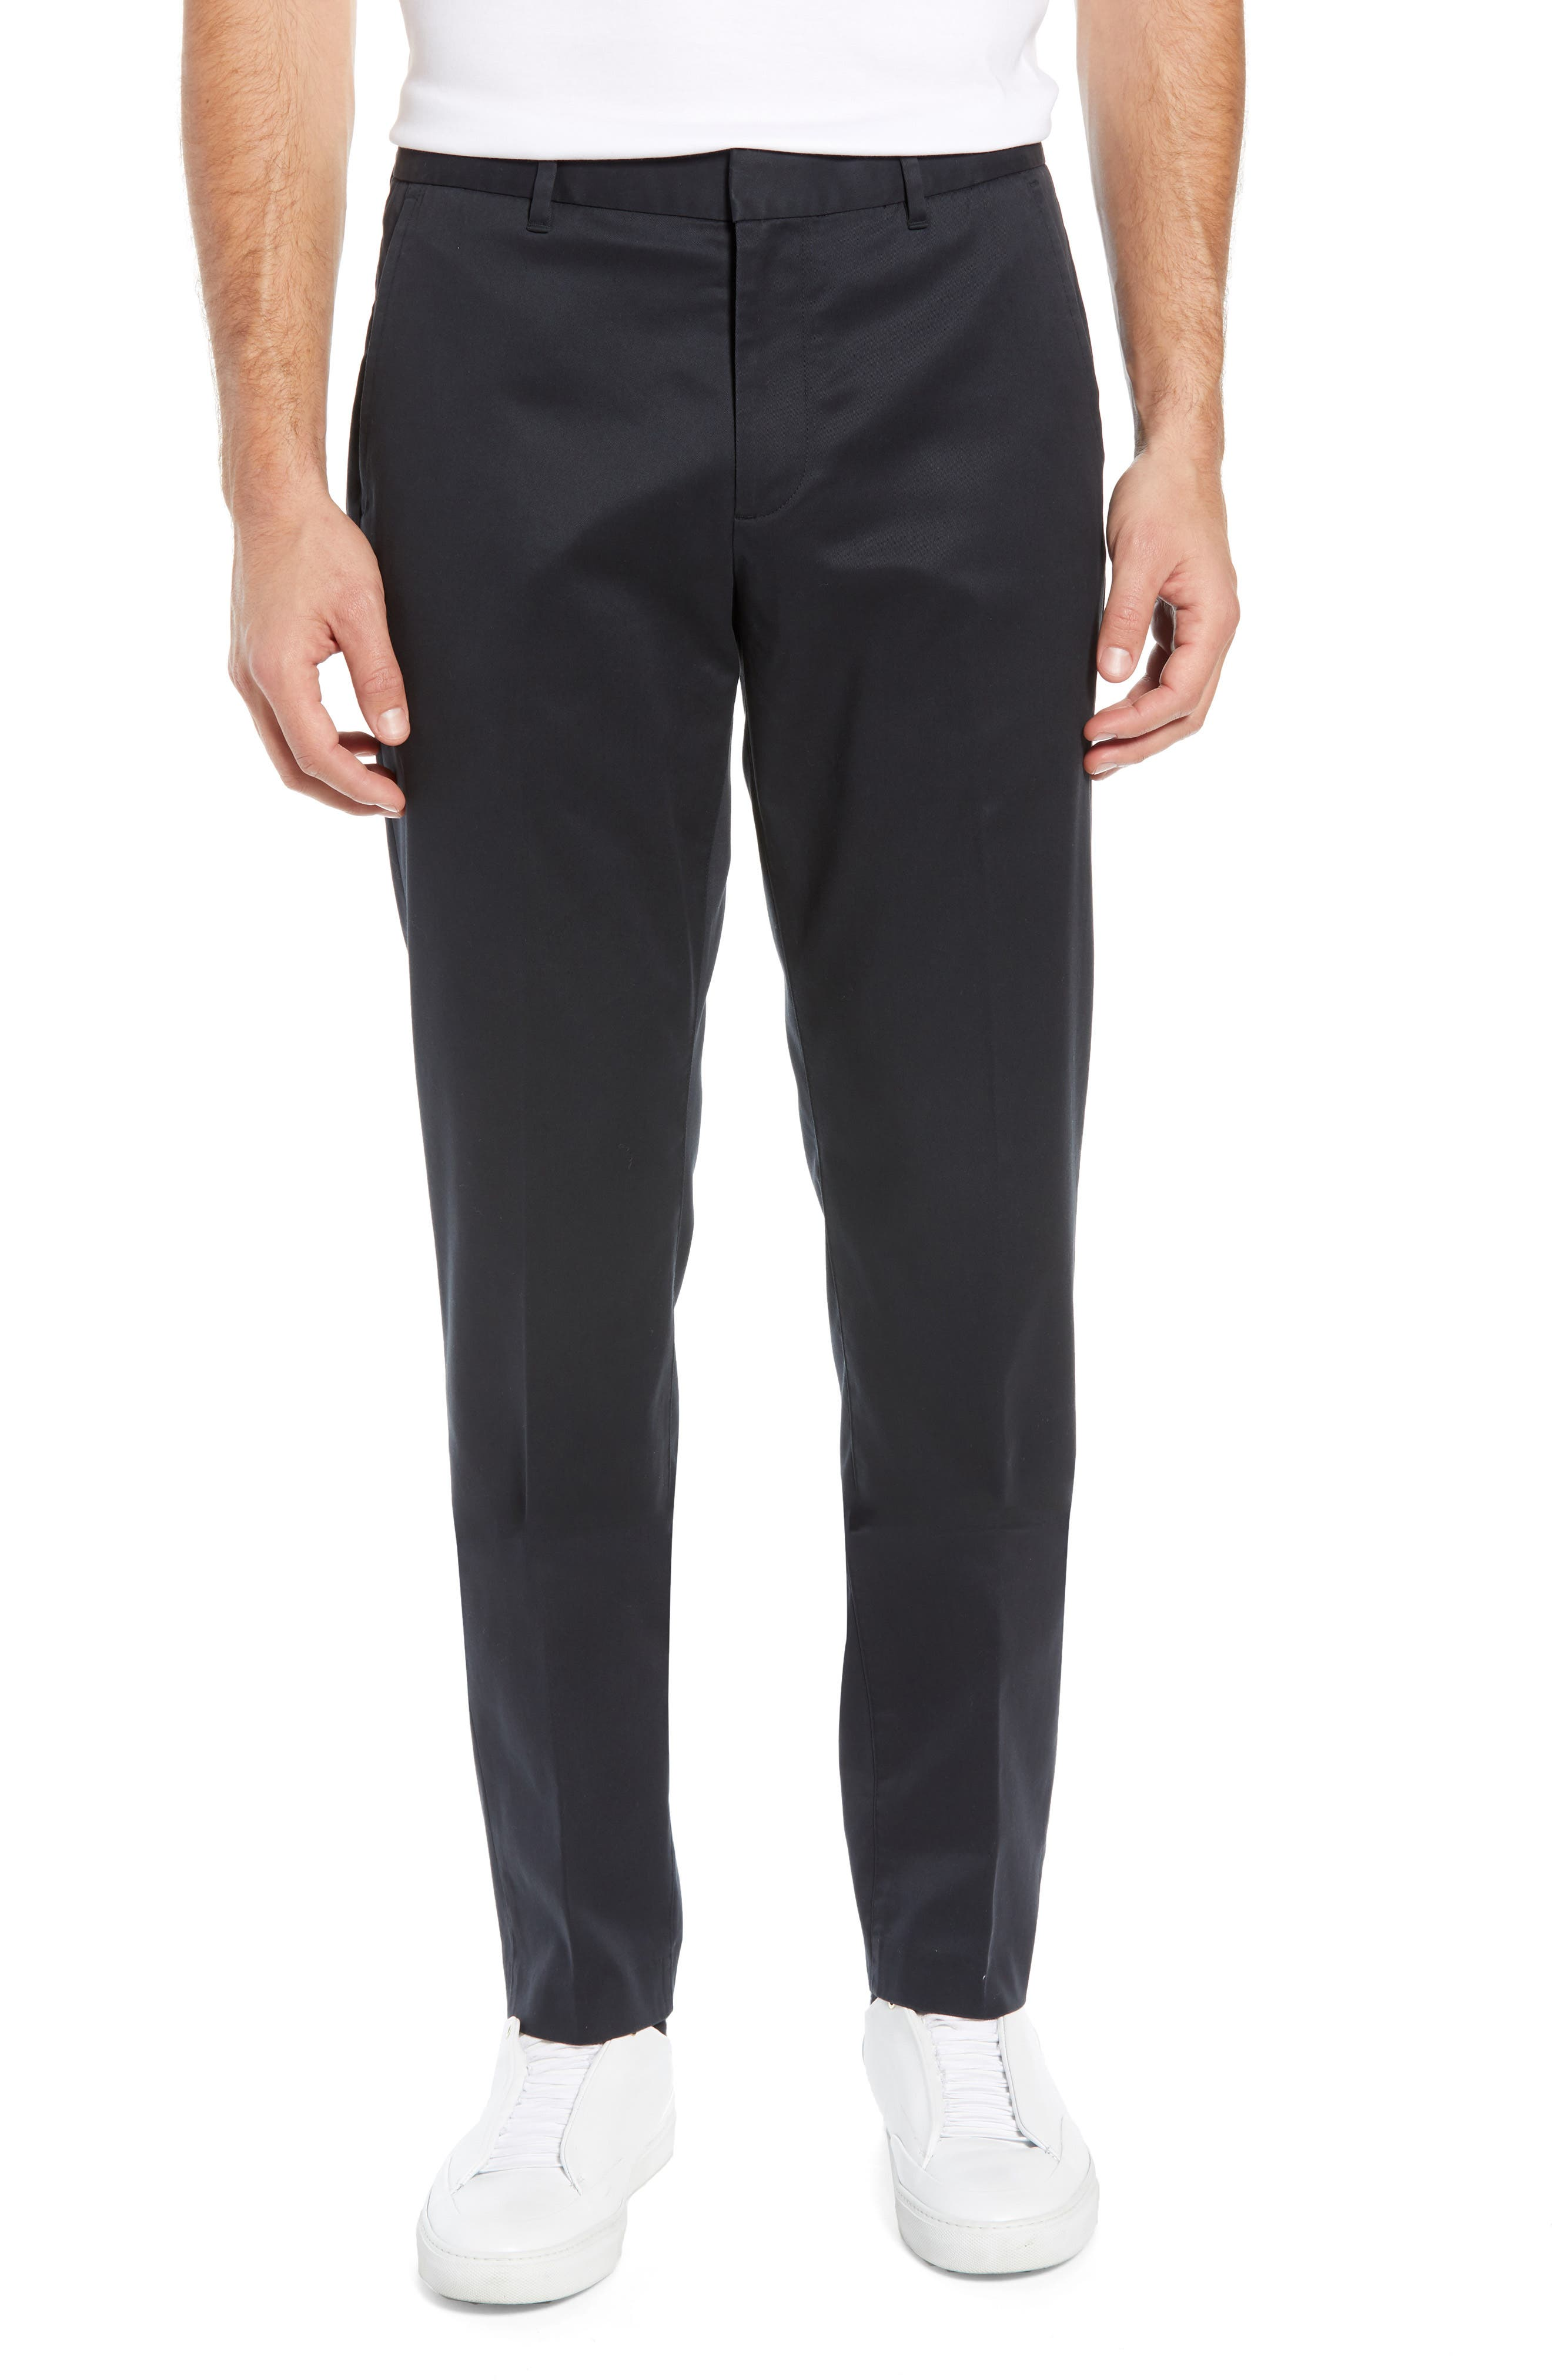 BONOBOS, Weekday Warrior Athletic Fit Stretch Dress Pants, Main thumbnail 1, color, TUESDAY BLACK